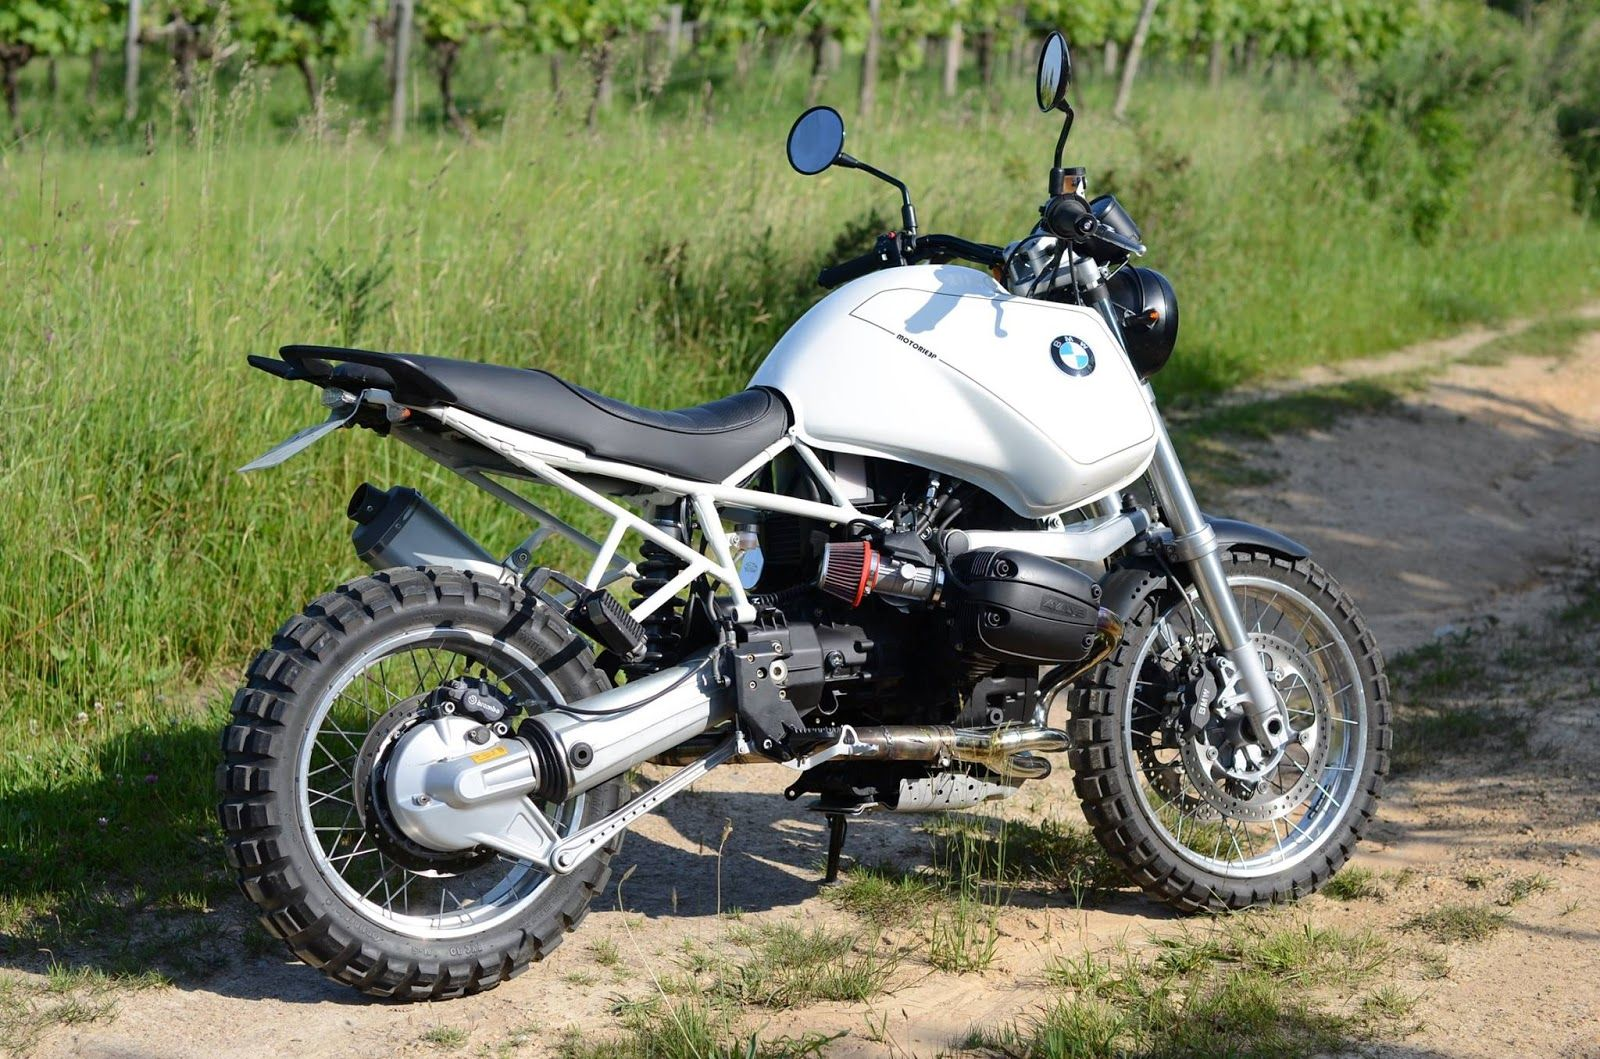 Bmw 1100 Gs : racing caf bmw r gs by motorieep bmw motorcycles pinterest bmw scrambler and cafes ~ Nature-et-papiers.com Idées de Décoration